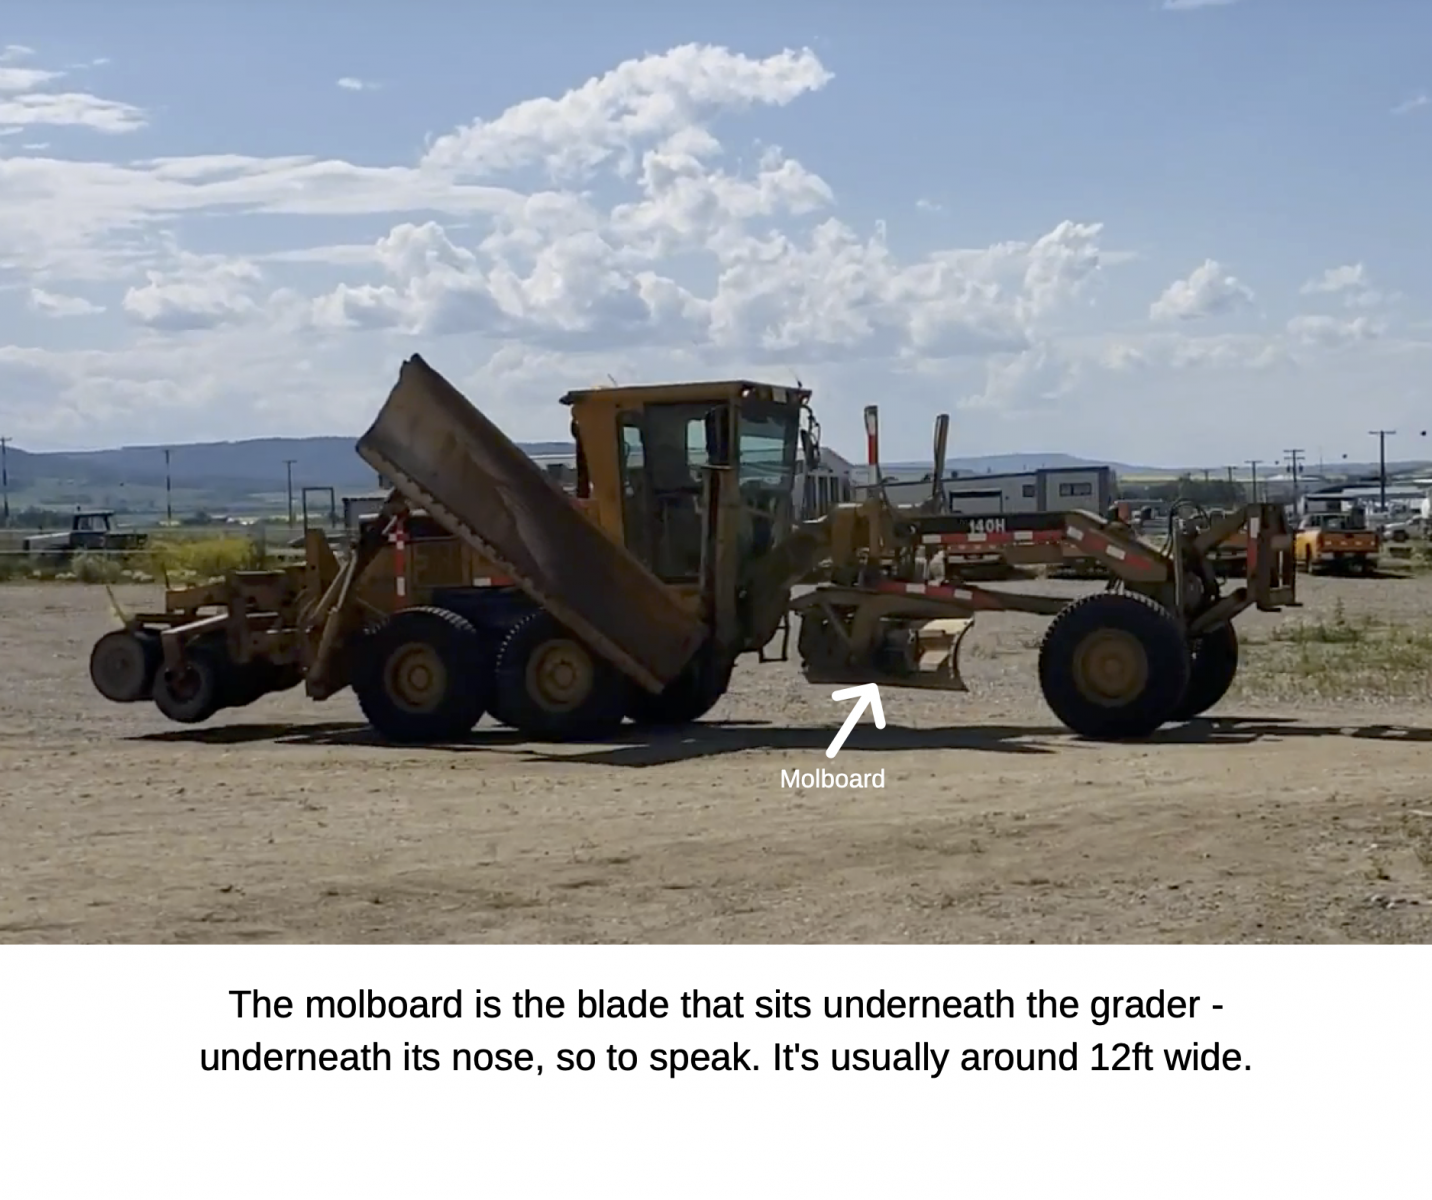 The molboard is the blade that sits underneath the grader - underneath its nose, so to speak. It's usually around 12ft wide.